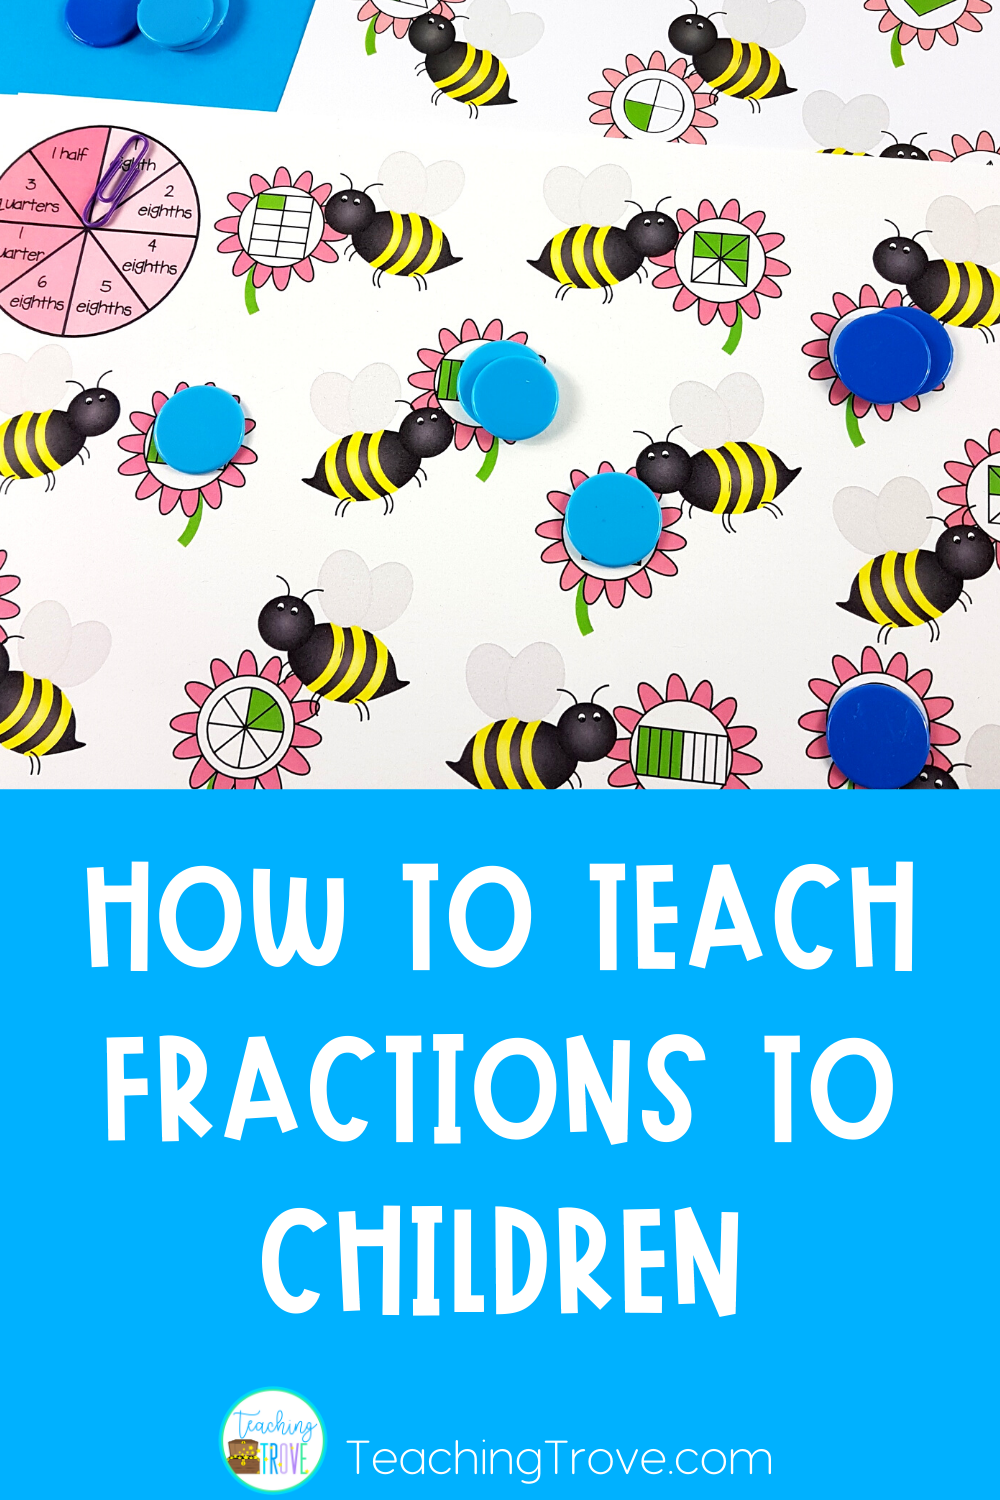 How To Make Learning Fractions Easy Learning Fractions 4th Grade Math Games Math Center Activities [ 1500 x 1000 Pixel ]